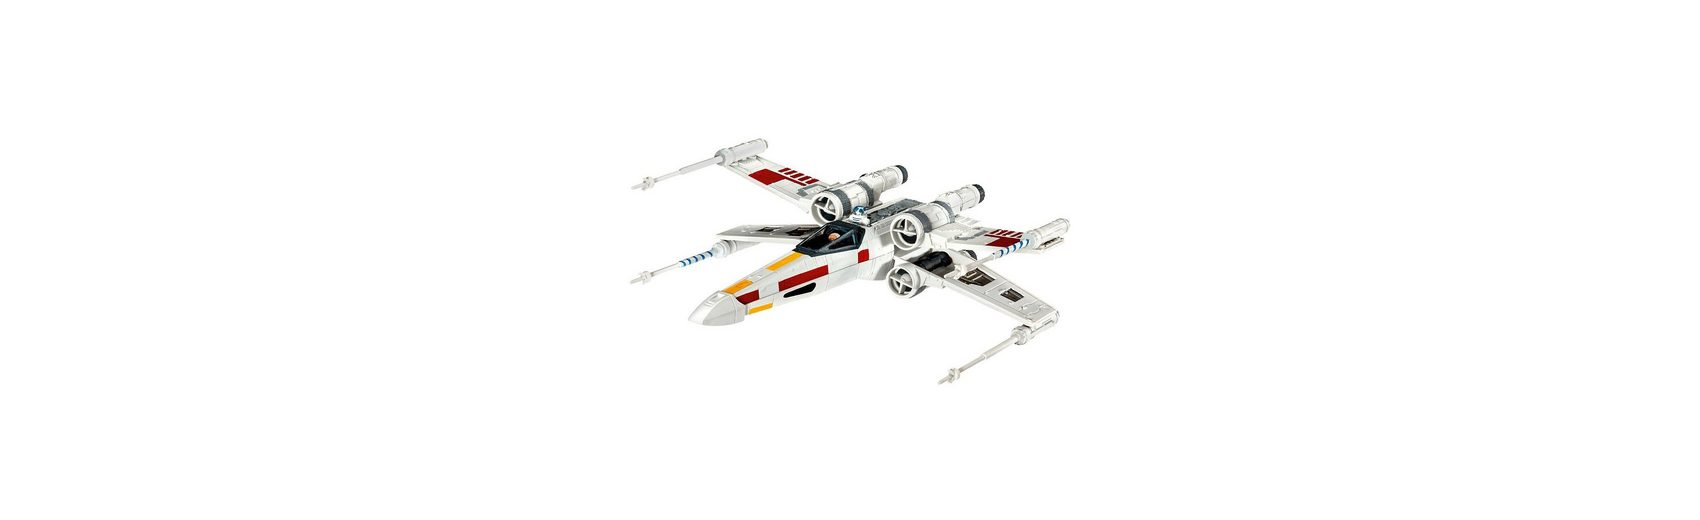 Revell Modellbausatz Star Wars X-wing Fighter